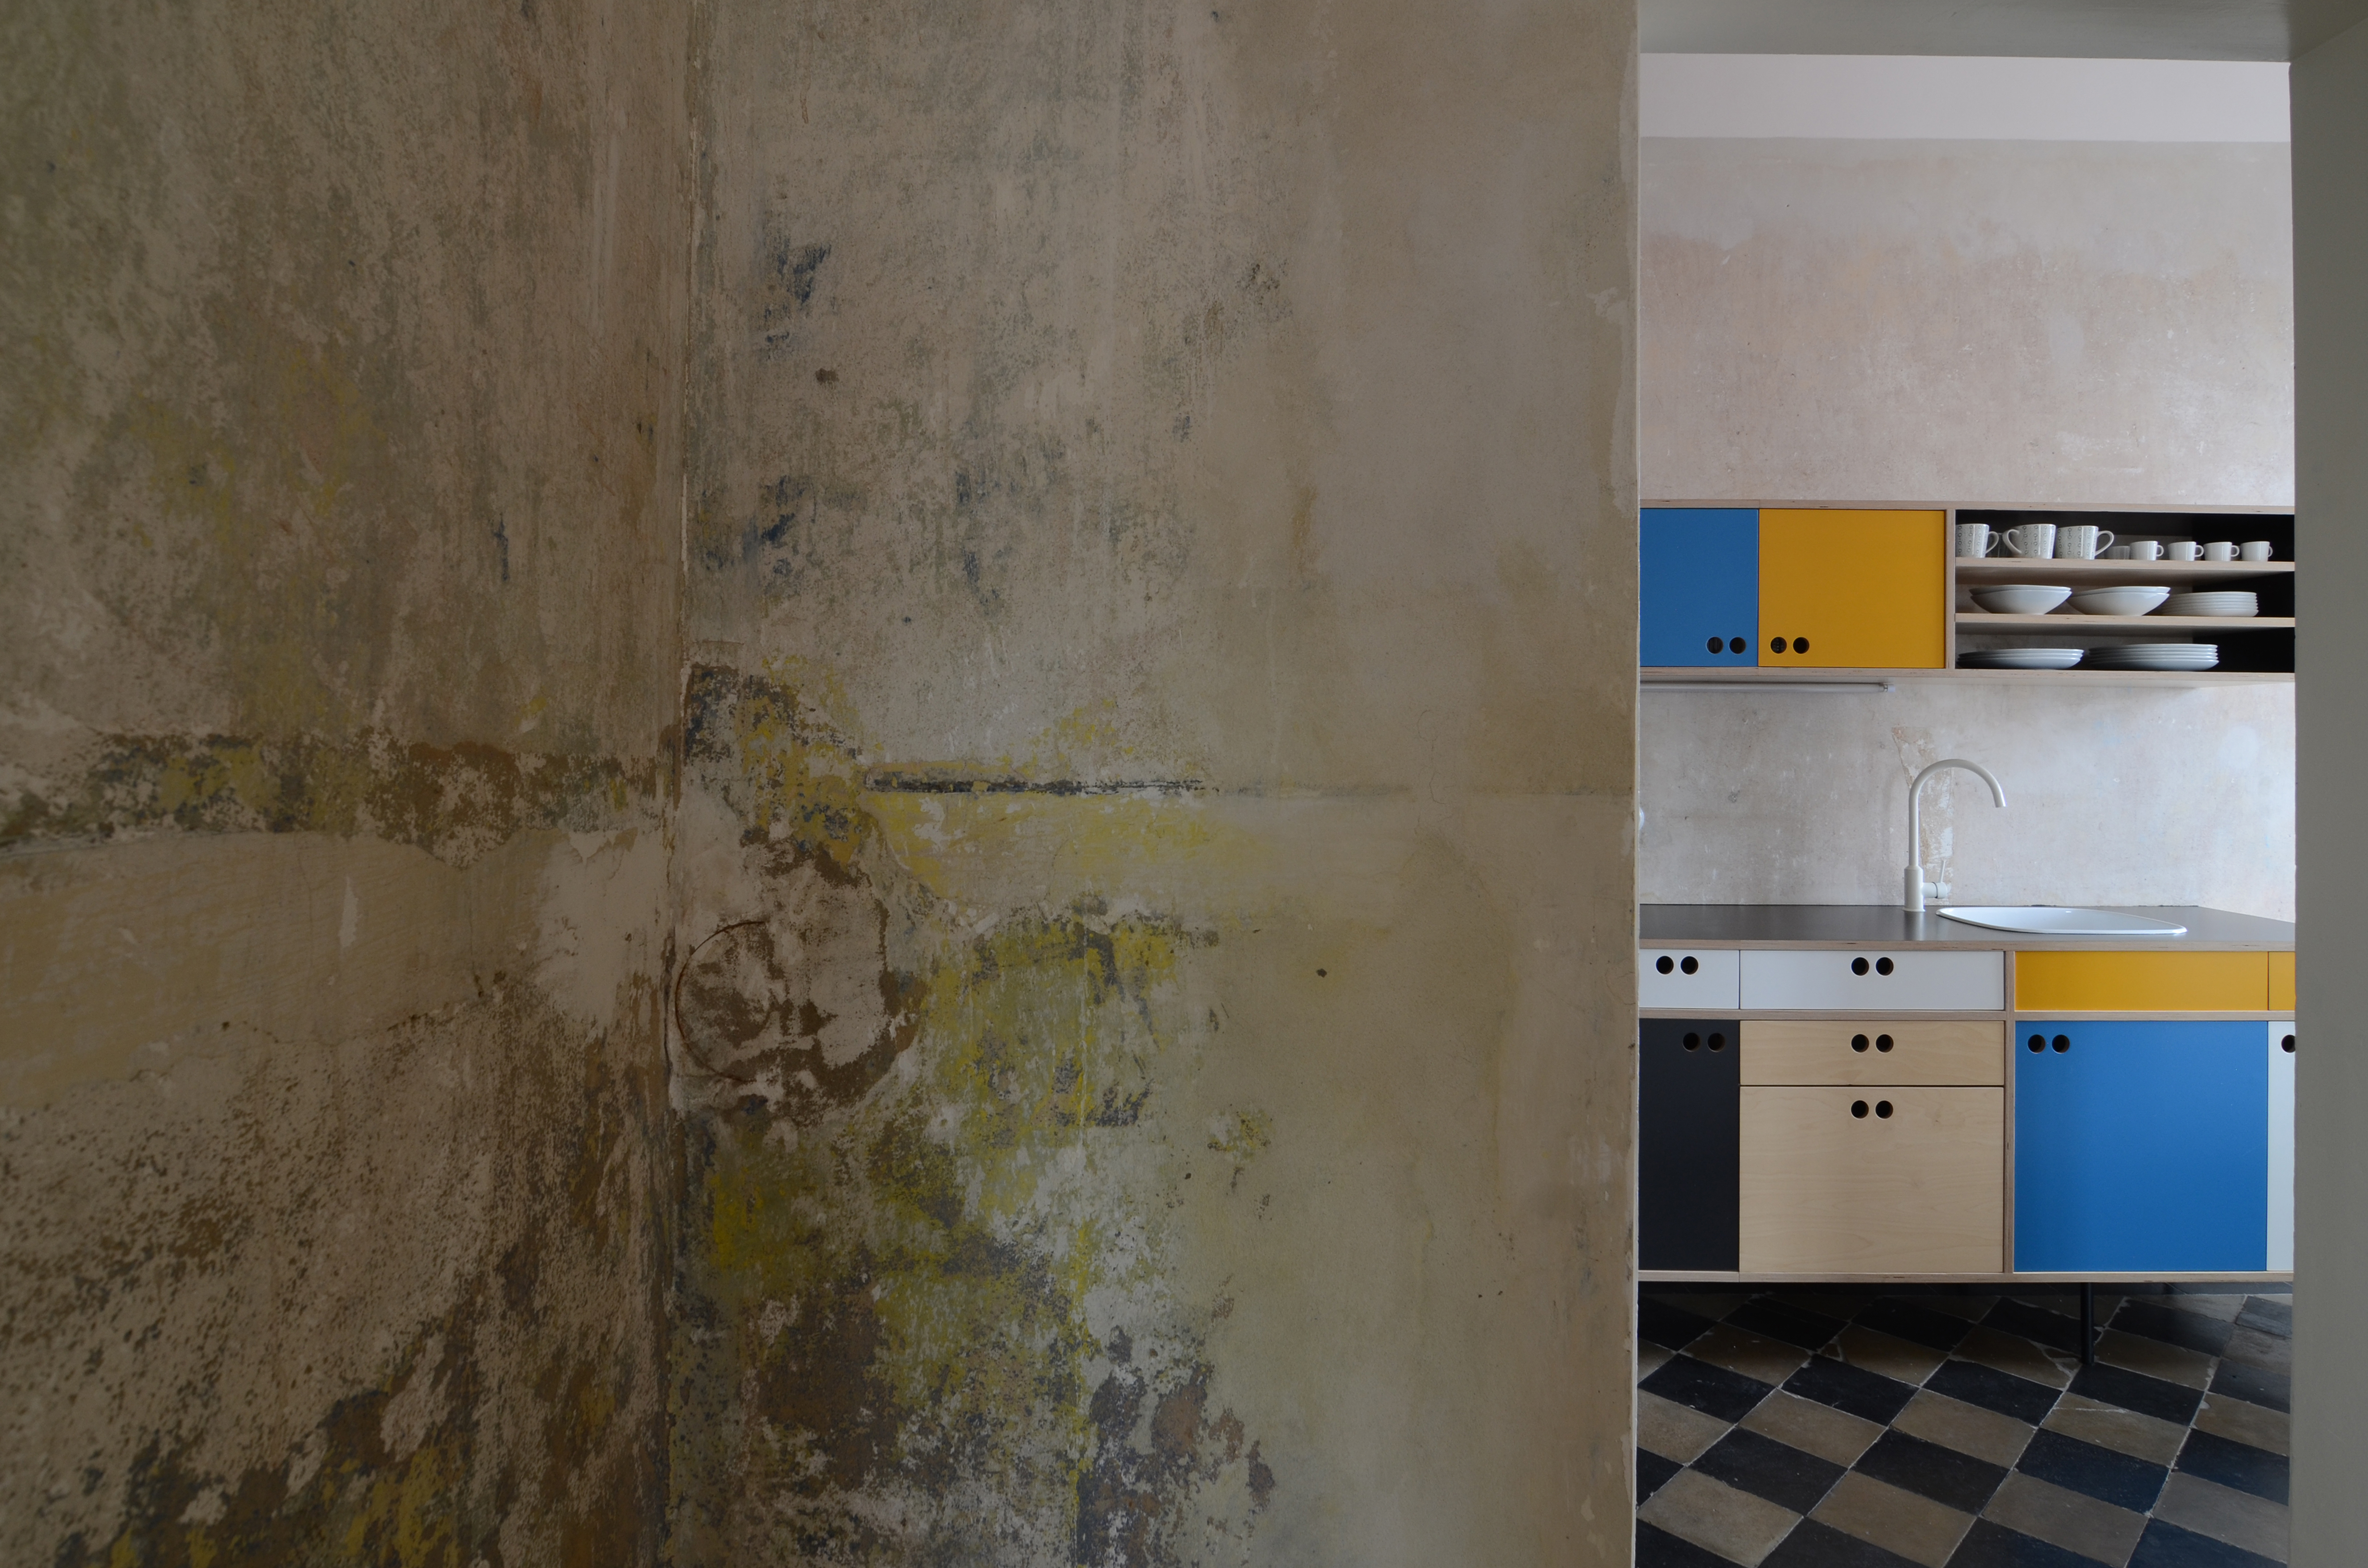 View of the stripped wall and blue and yellow kitchen